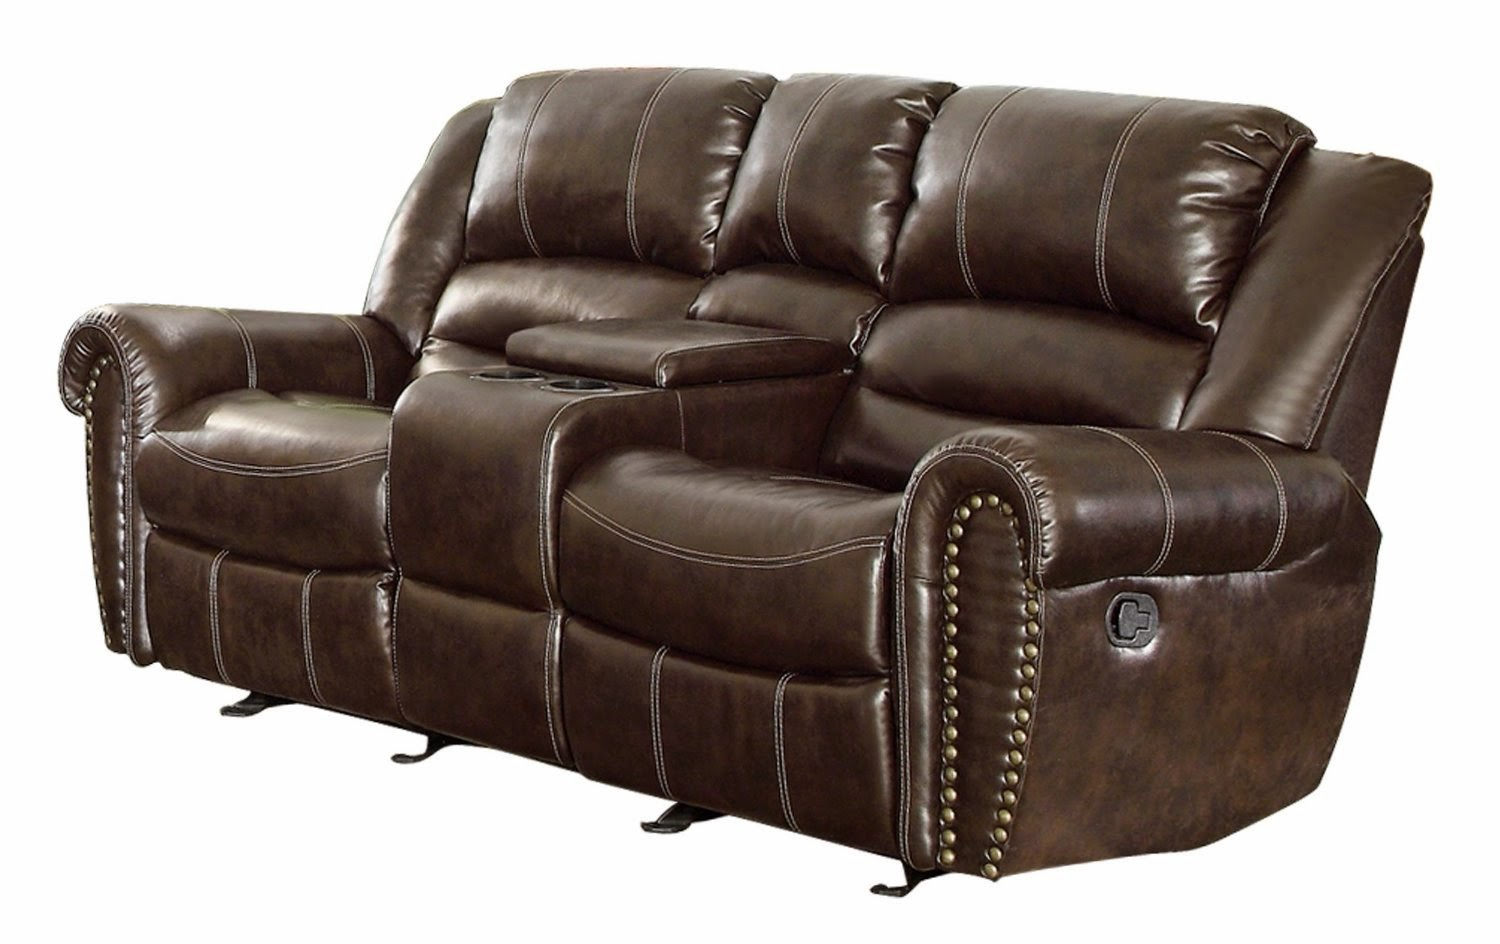 Where is the best place to buy recliner sofa 2 seater brown leather recliner sofa Loveseats with console